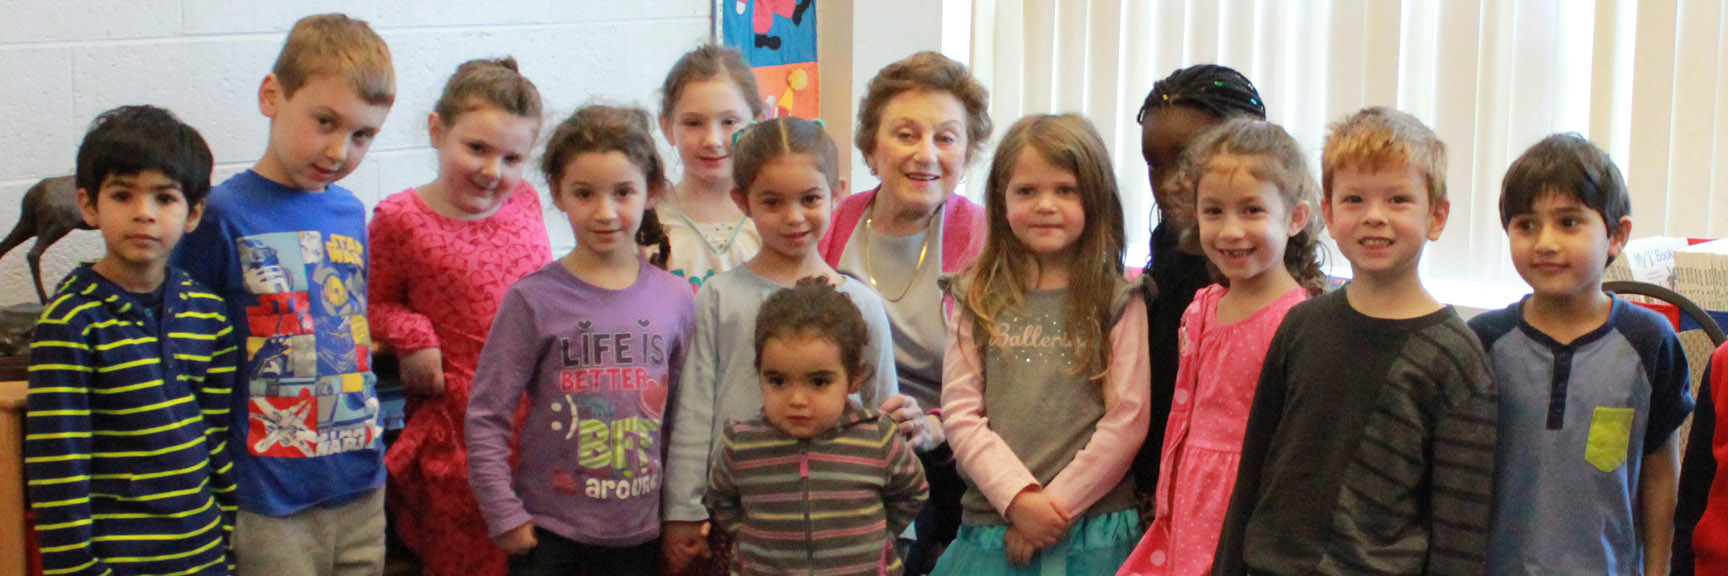 Lehigh Valley Preschool - Full-Day Kindergarten